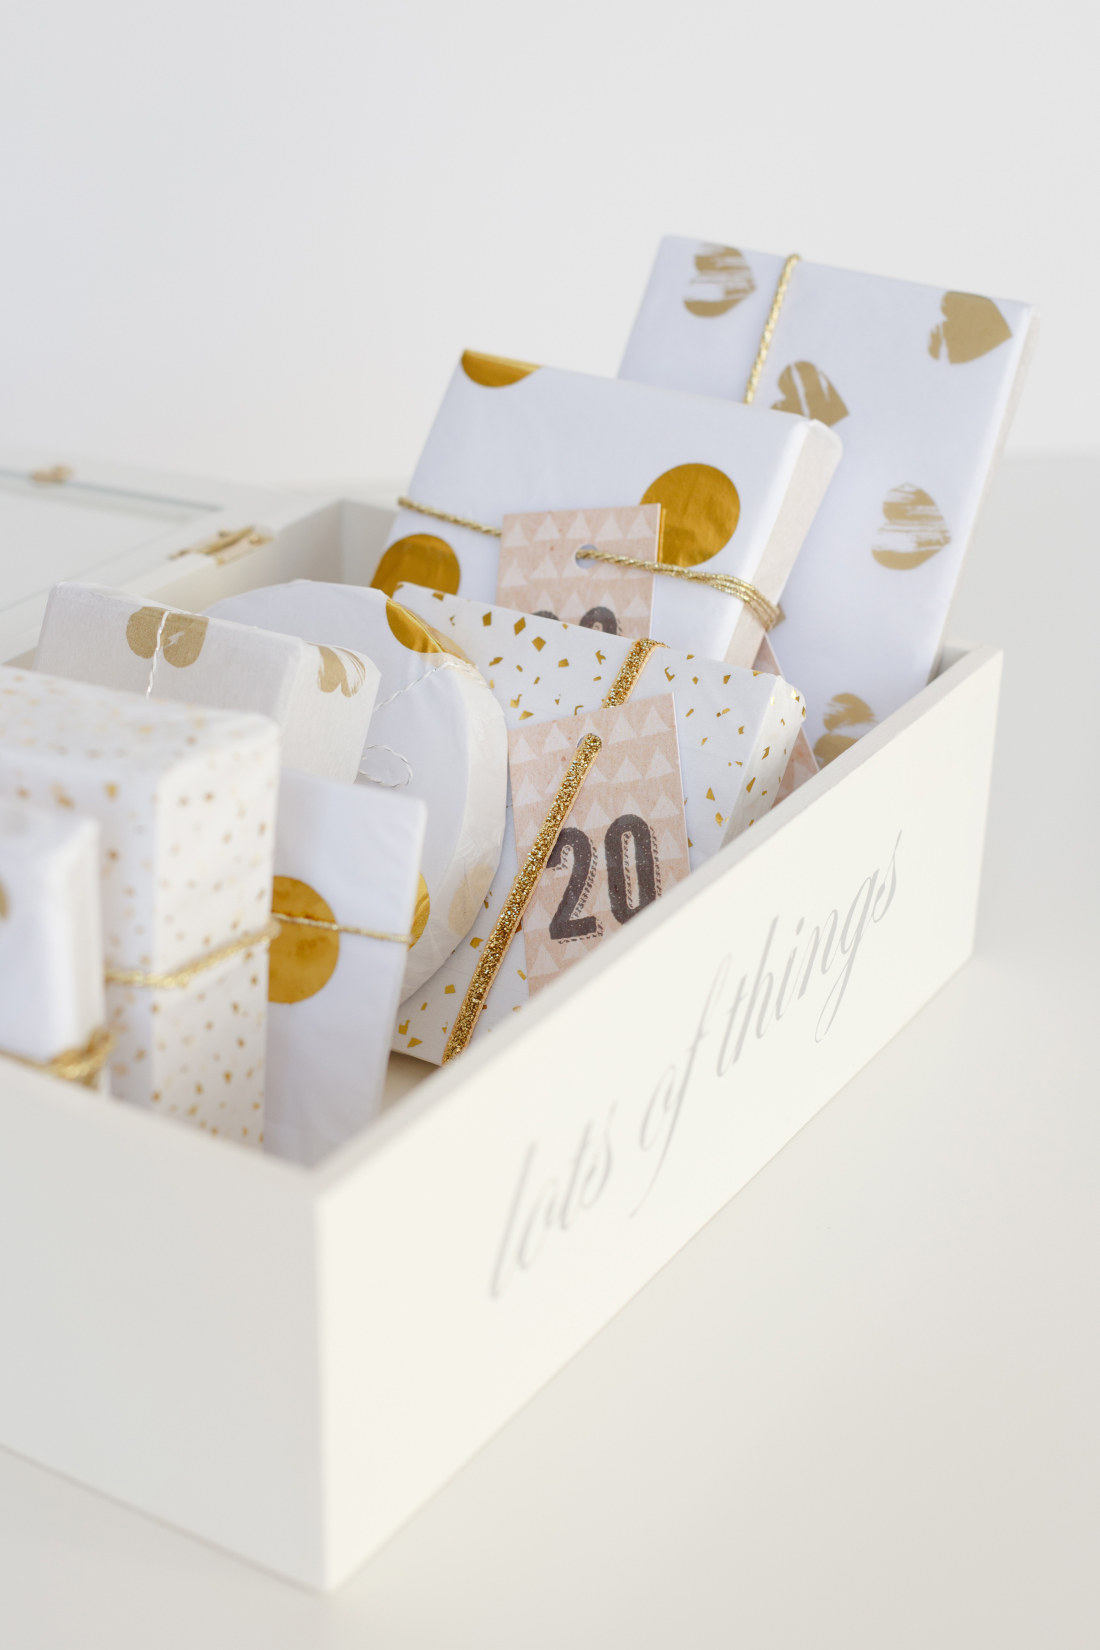 Luxury Diy Advent Calendar Printables From Hip Hip Hooray